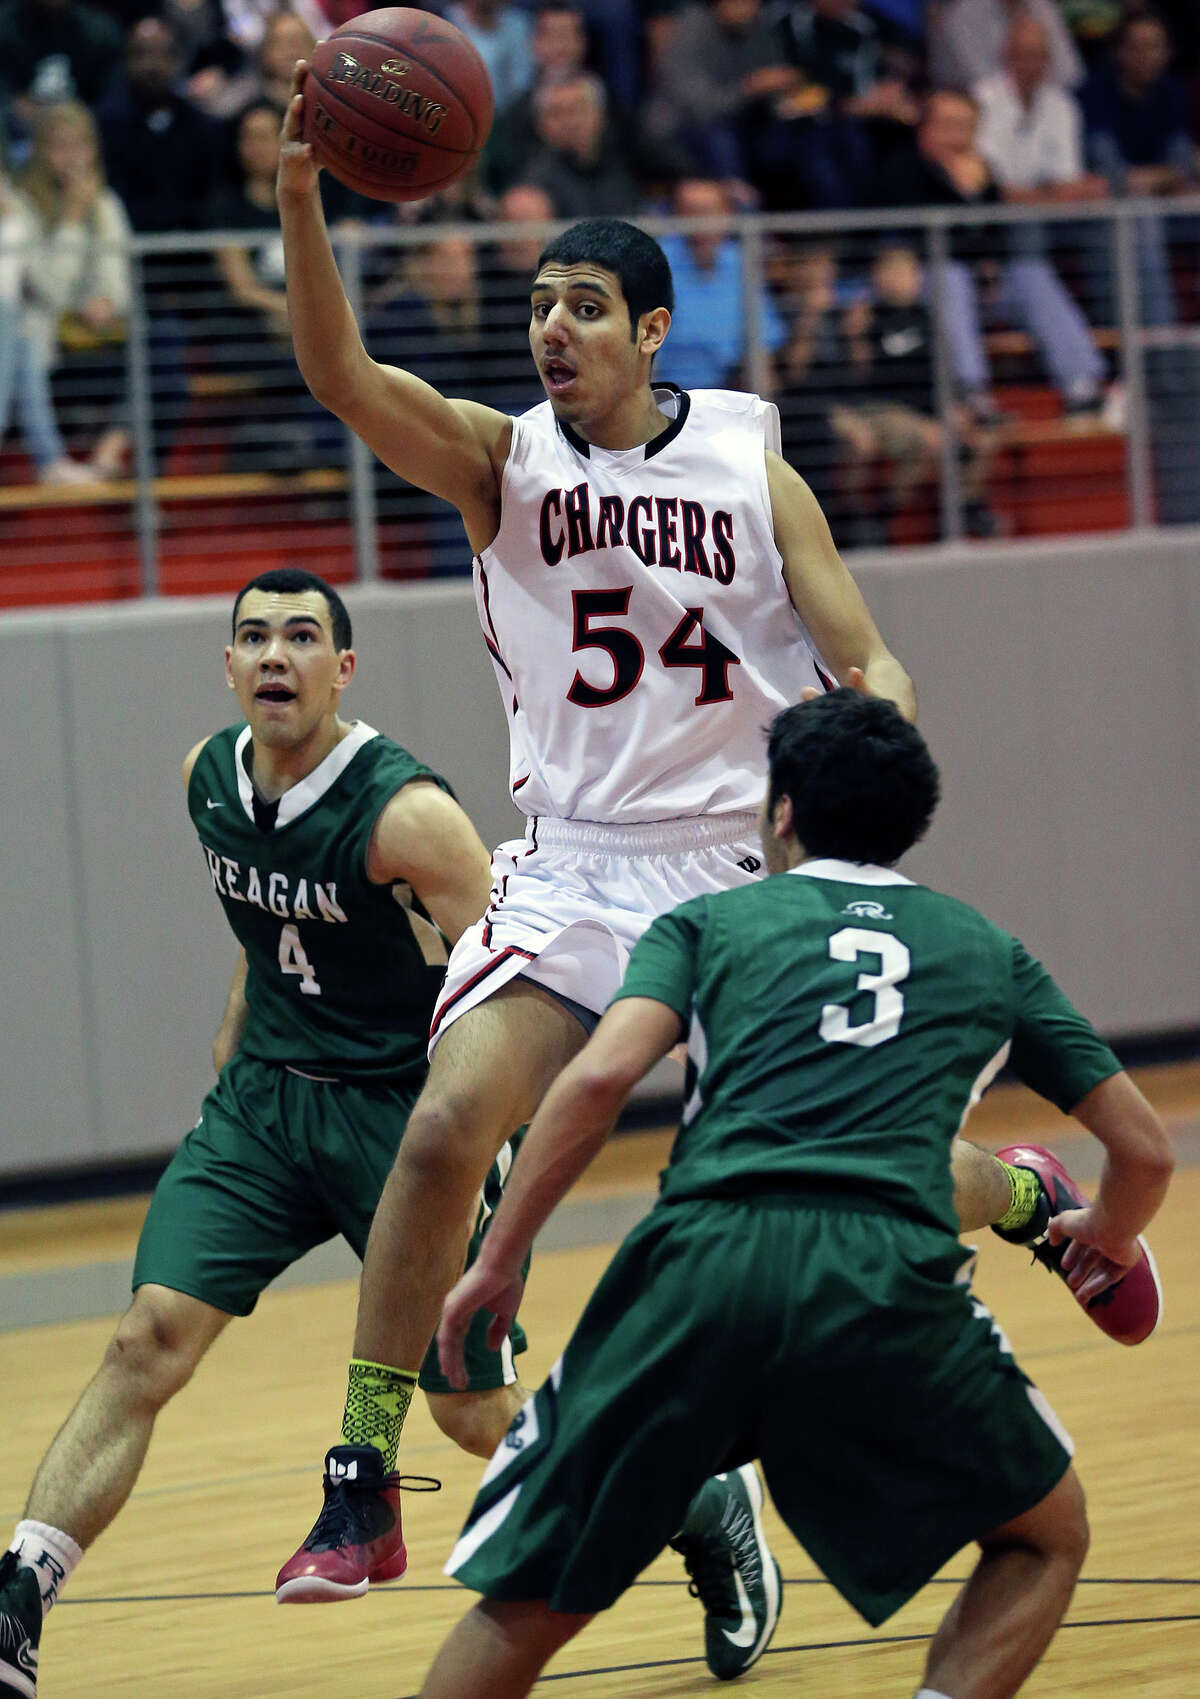 Charger center Abdulla Al-Bader throws a no look pass on a fast break to score as Reagan plays Churchill at the Lee High School gym on February 8, 2013.